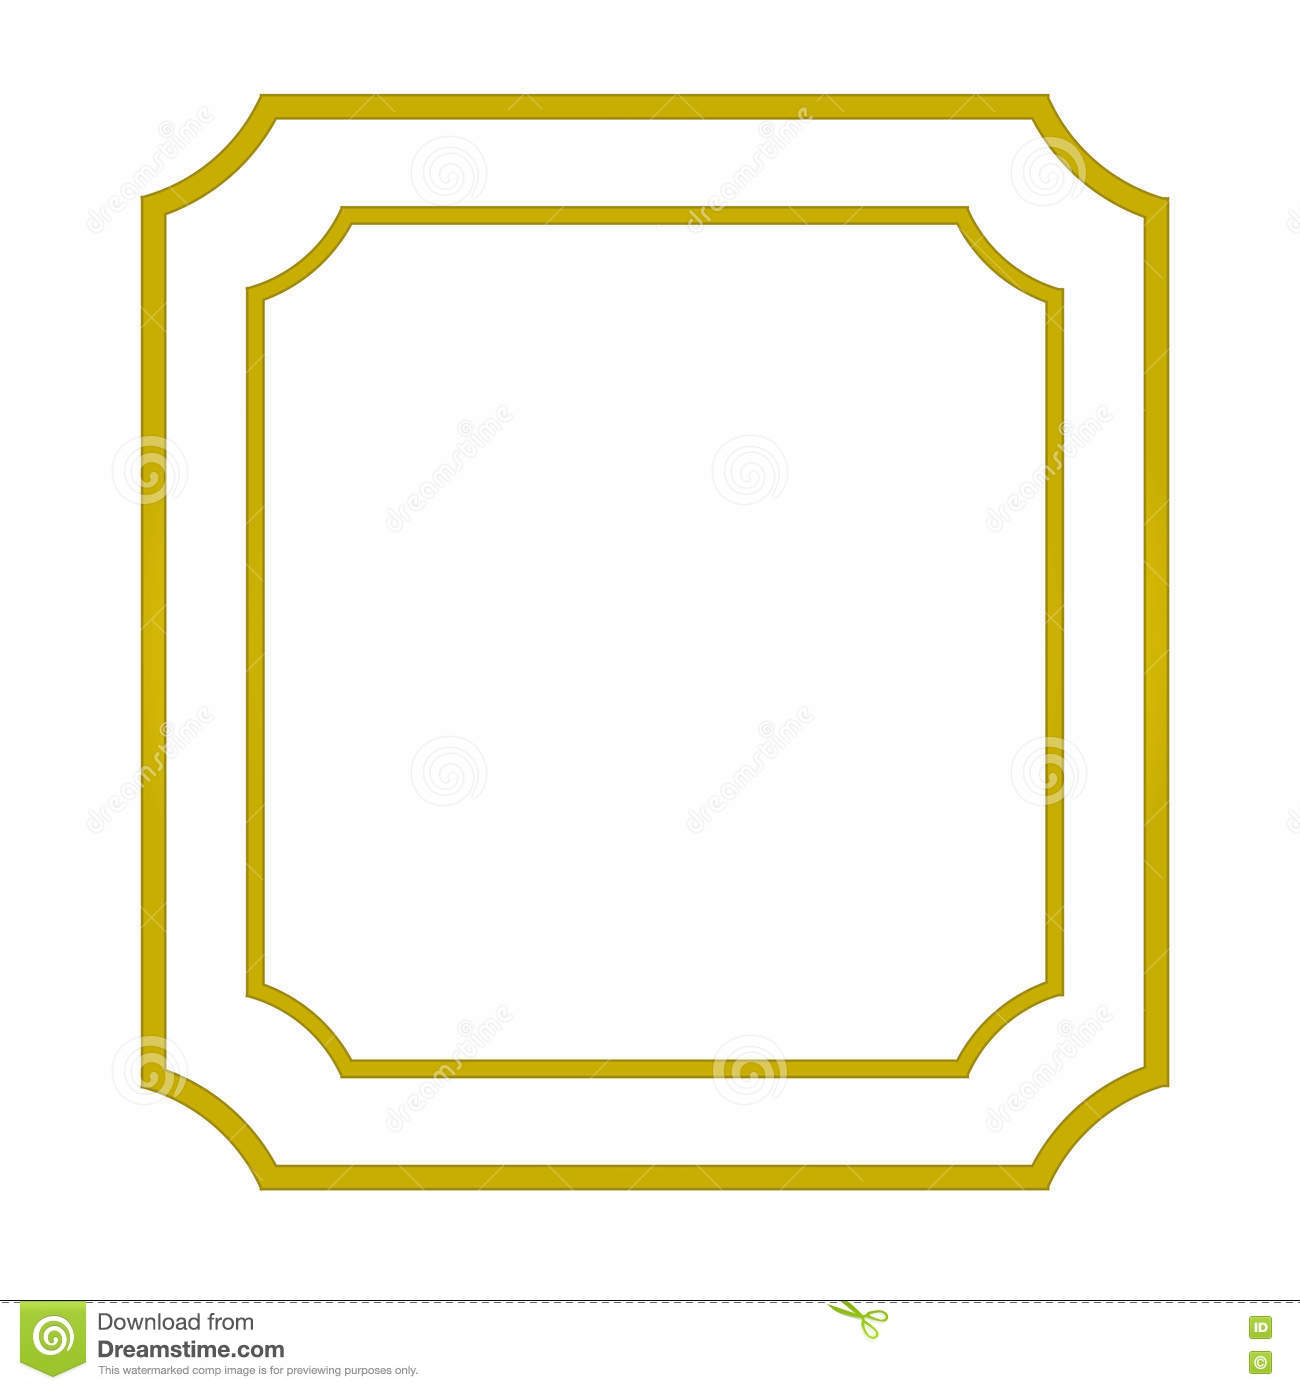 97f7b67a5b3e Vintage blank gold frame isolated on white background